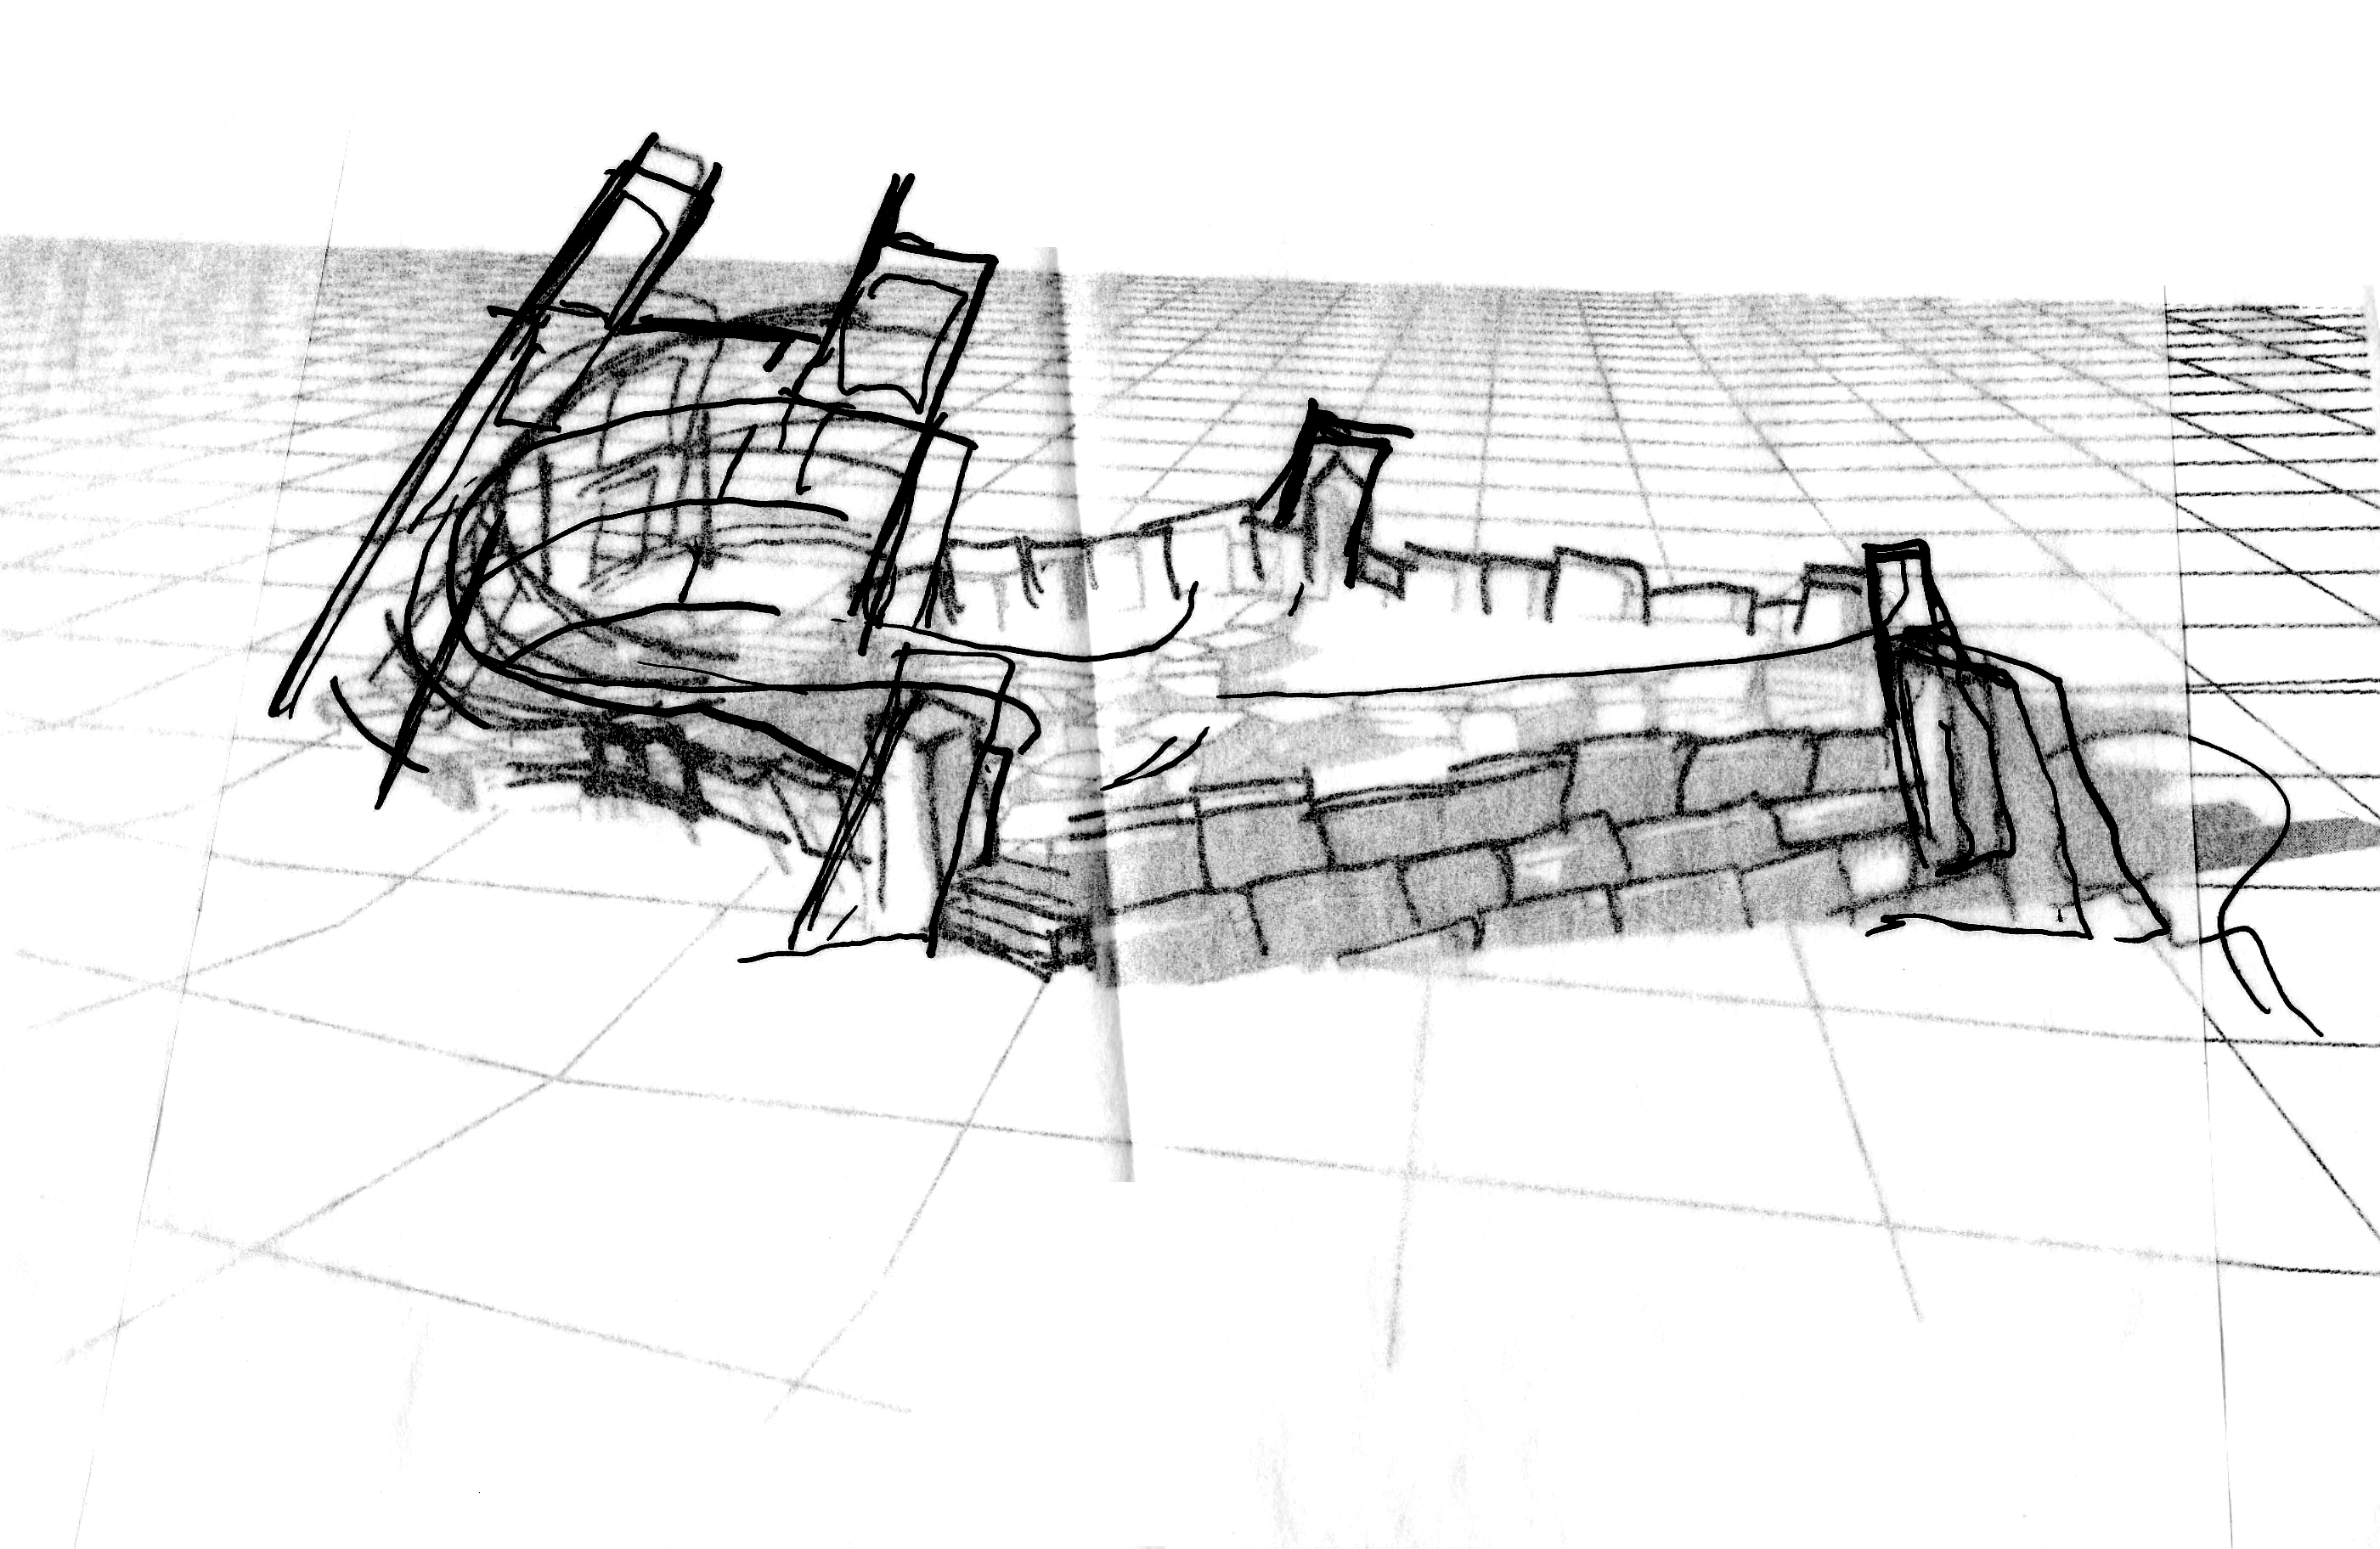 Future Monument (2009) rhombus pool sketch